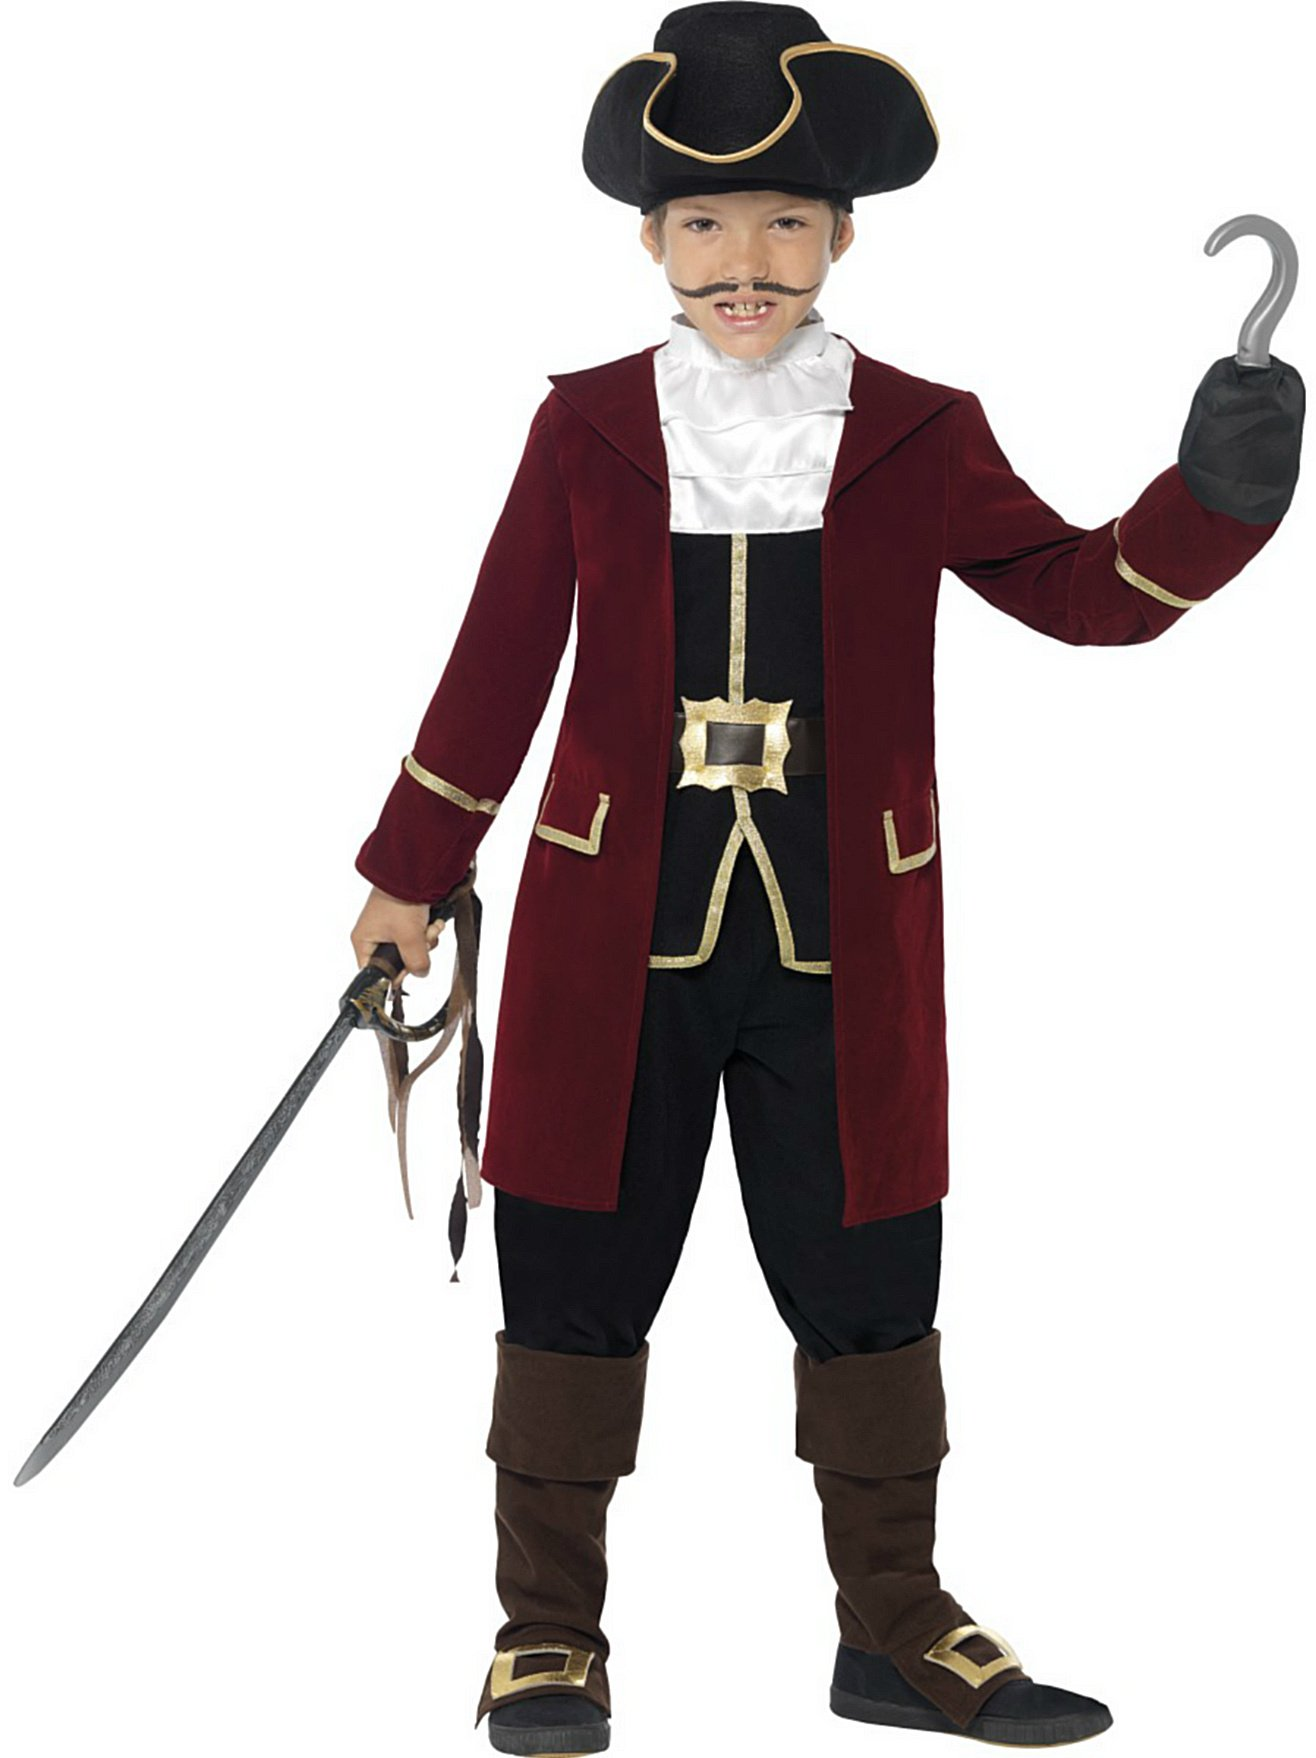 Pirates Little Boys' Deluxe Pirate Captain Fancy Dres Costume All 4-6 Years Red And Black by Unknown